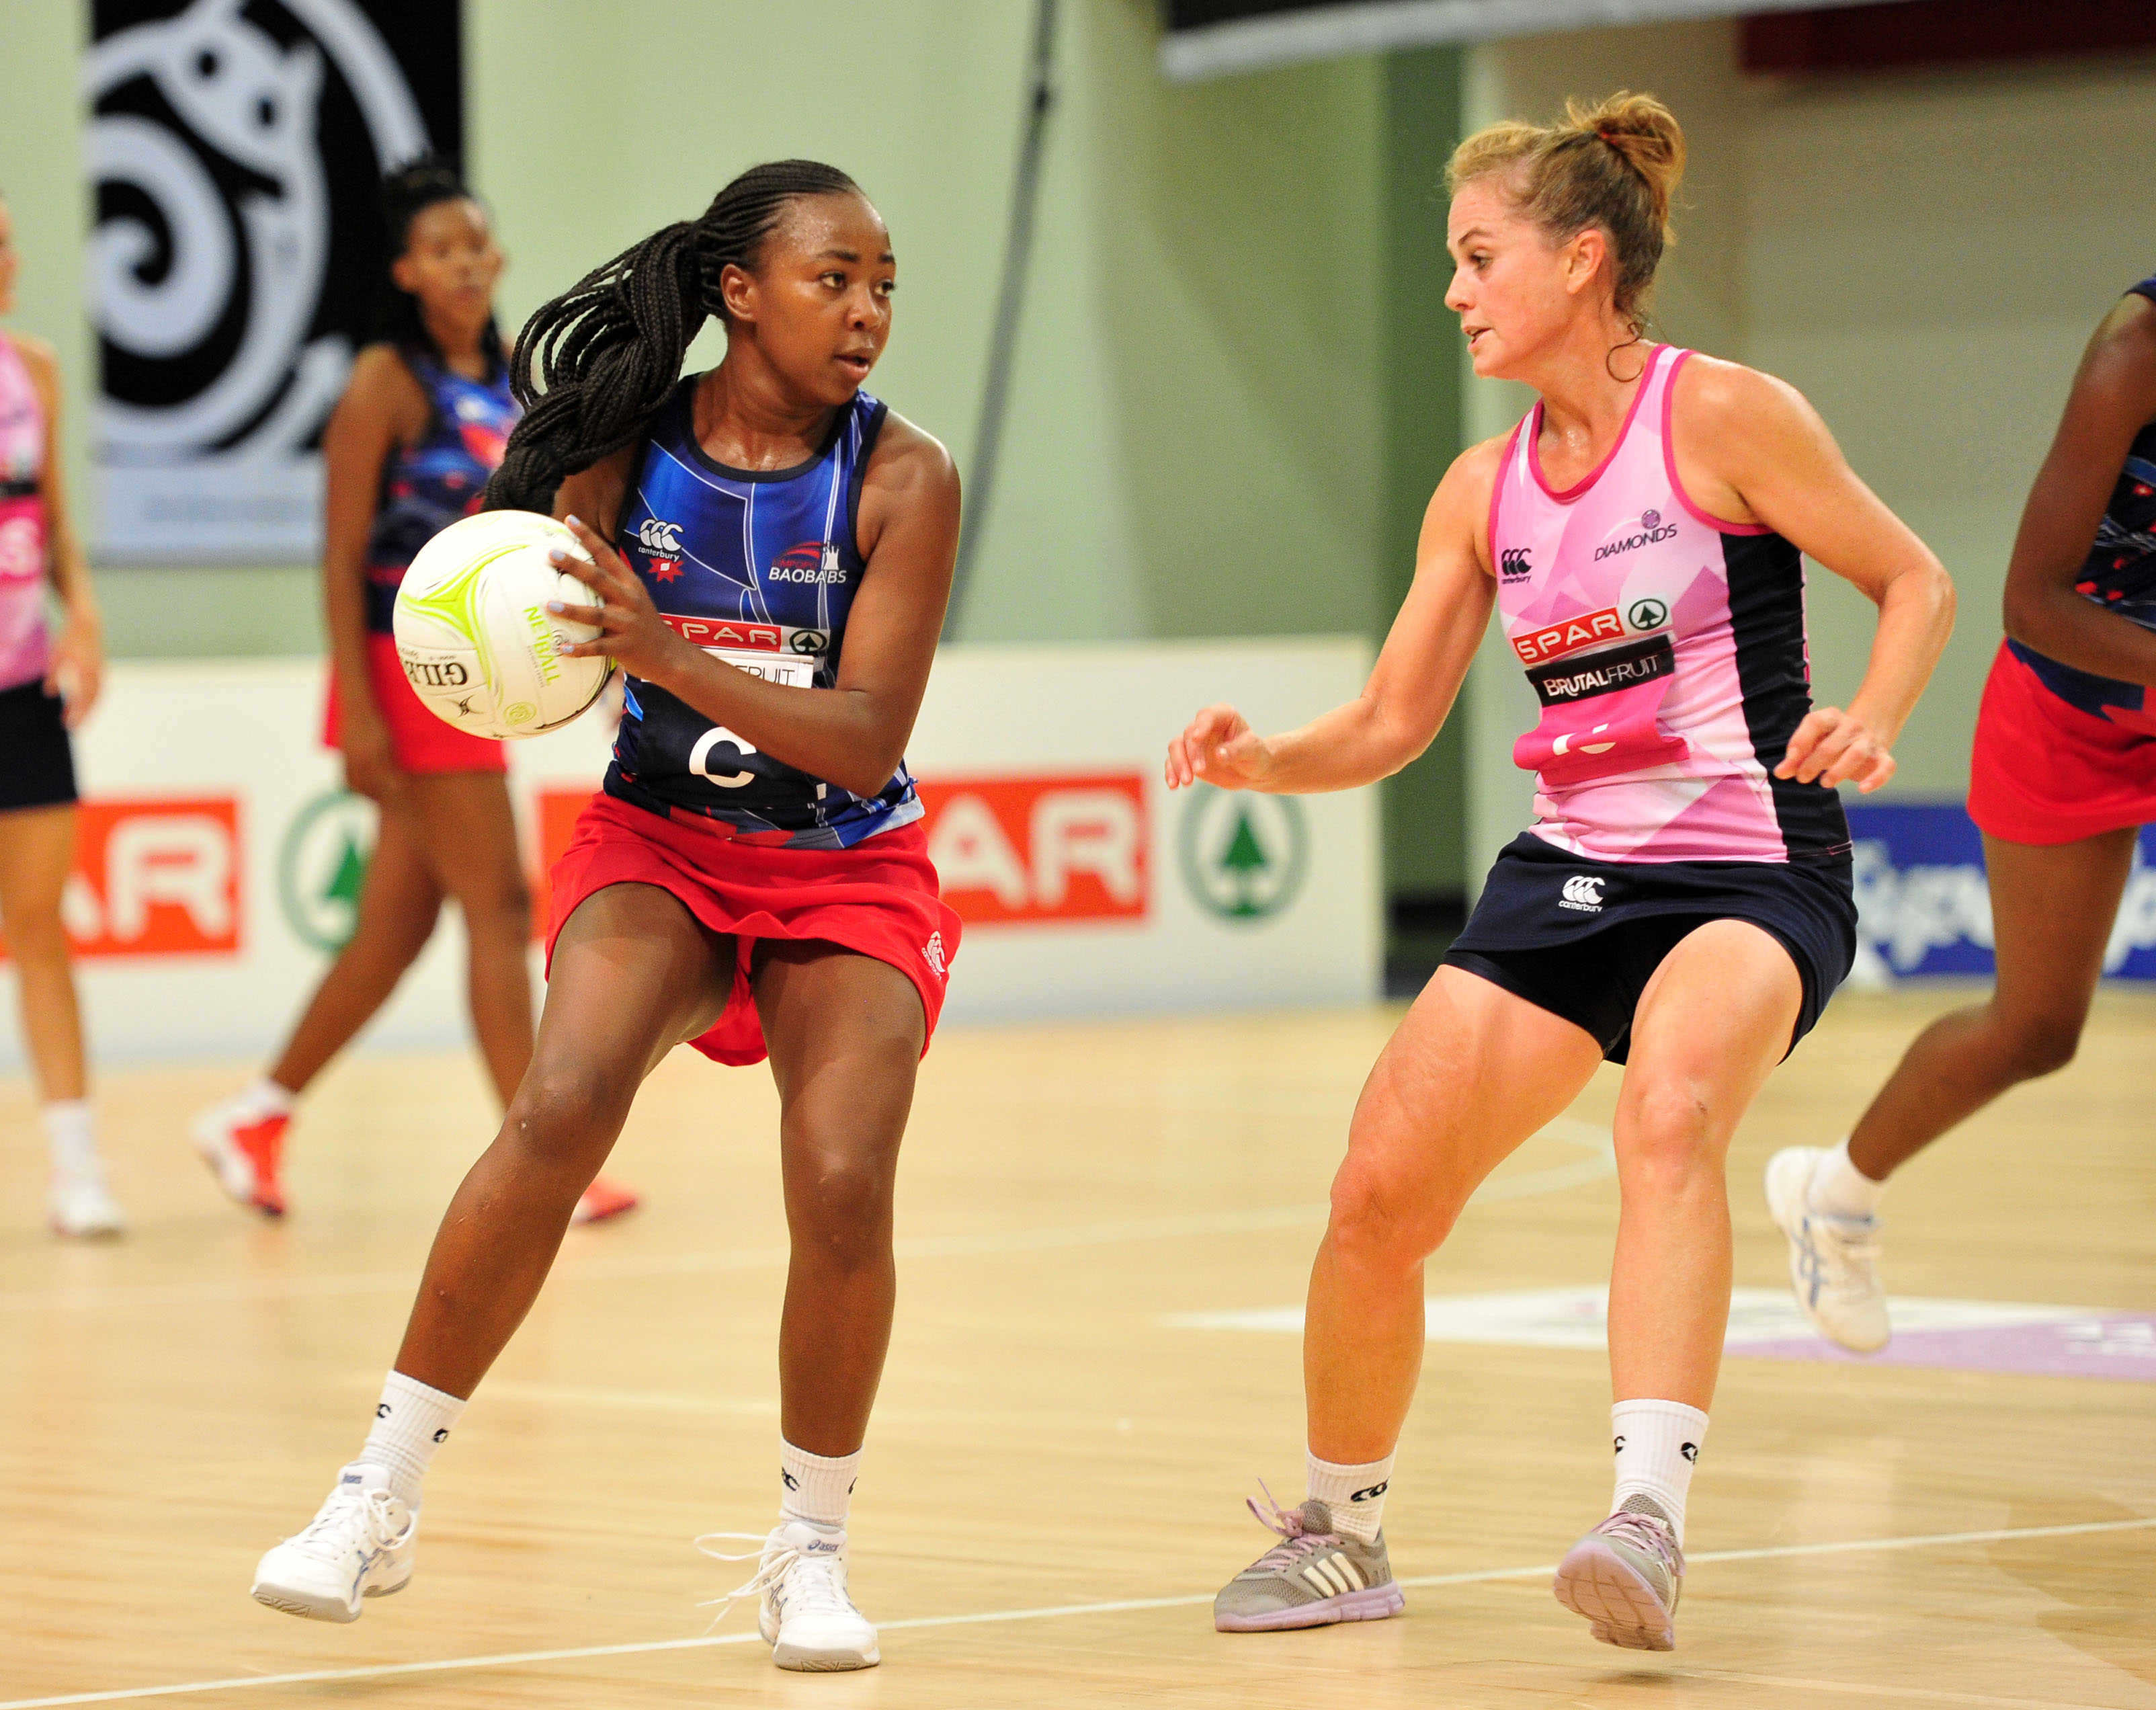 Stings gain momentum as they sink Stars in Durban